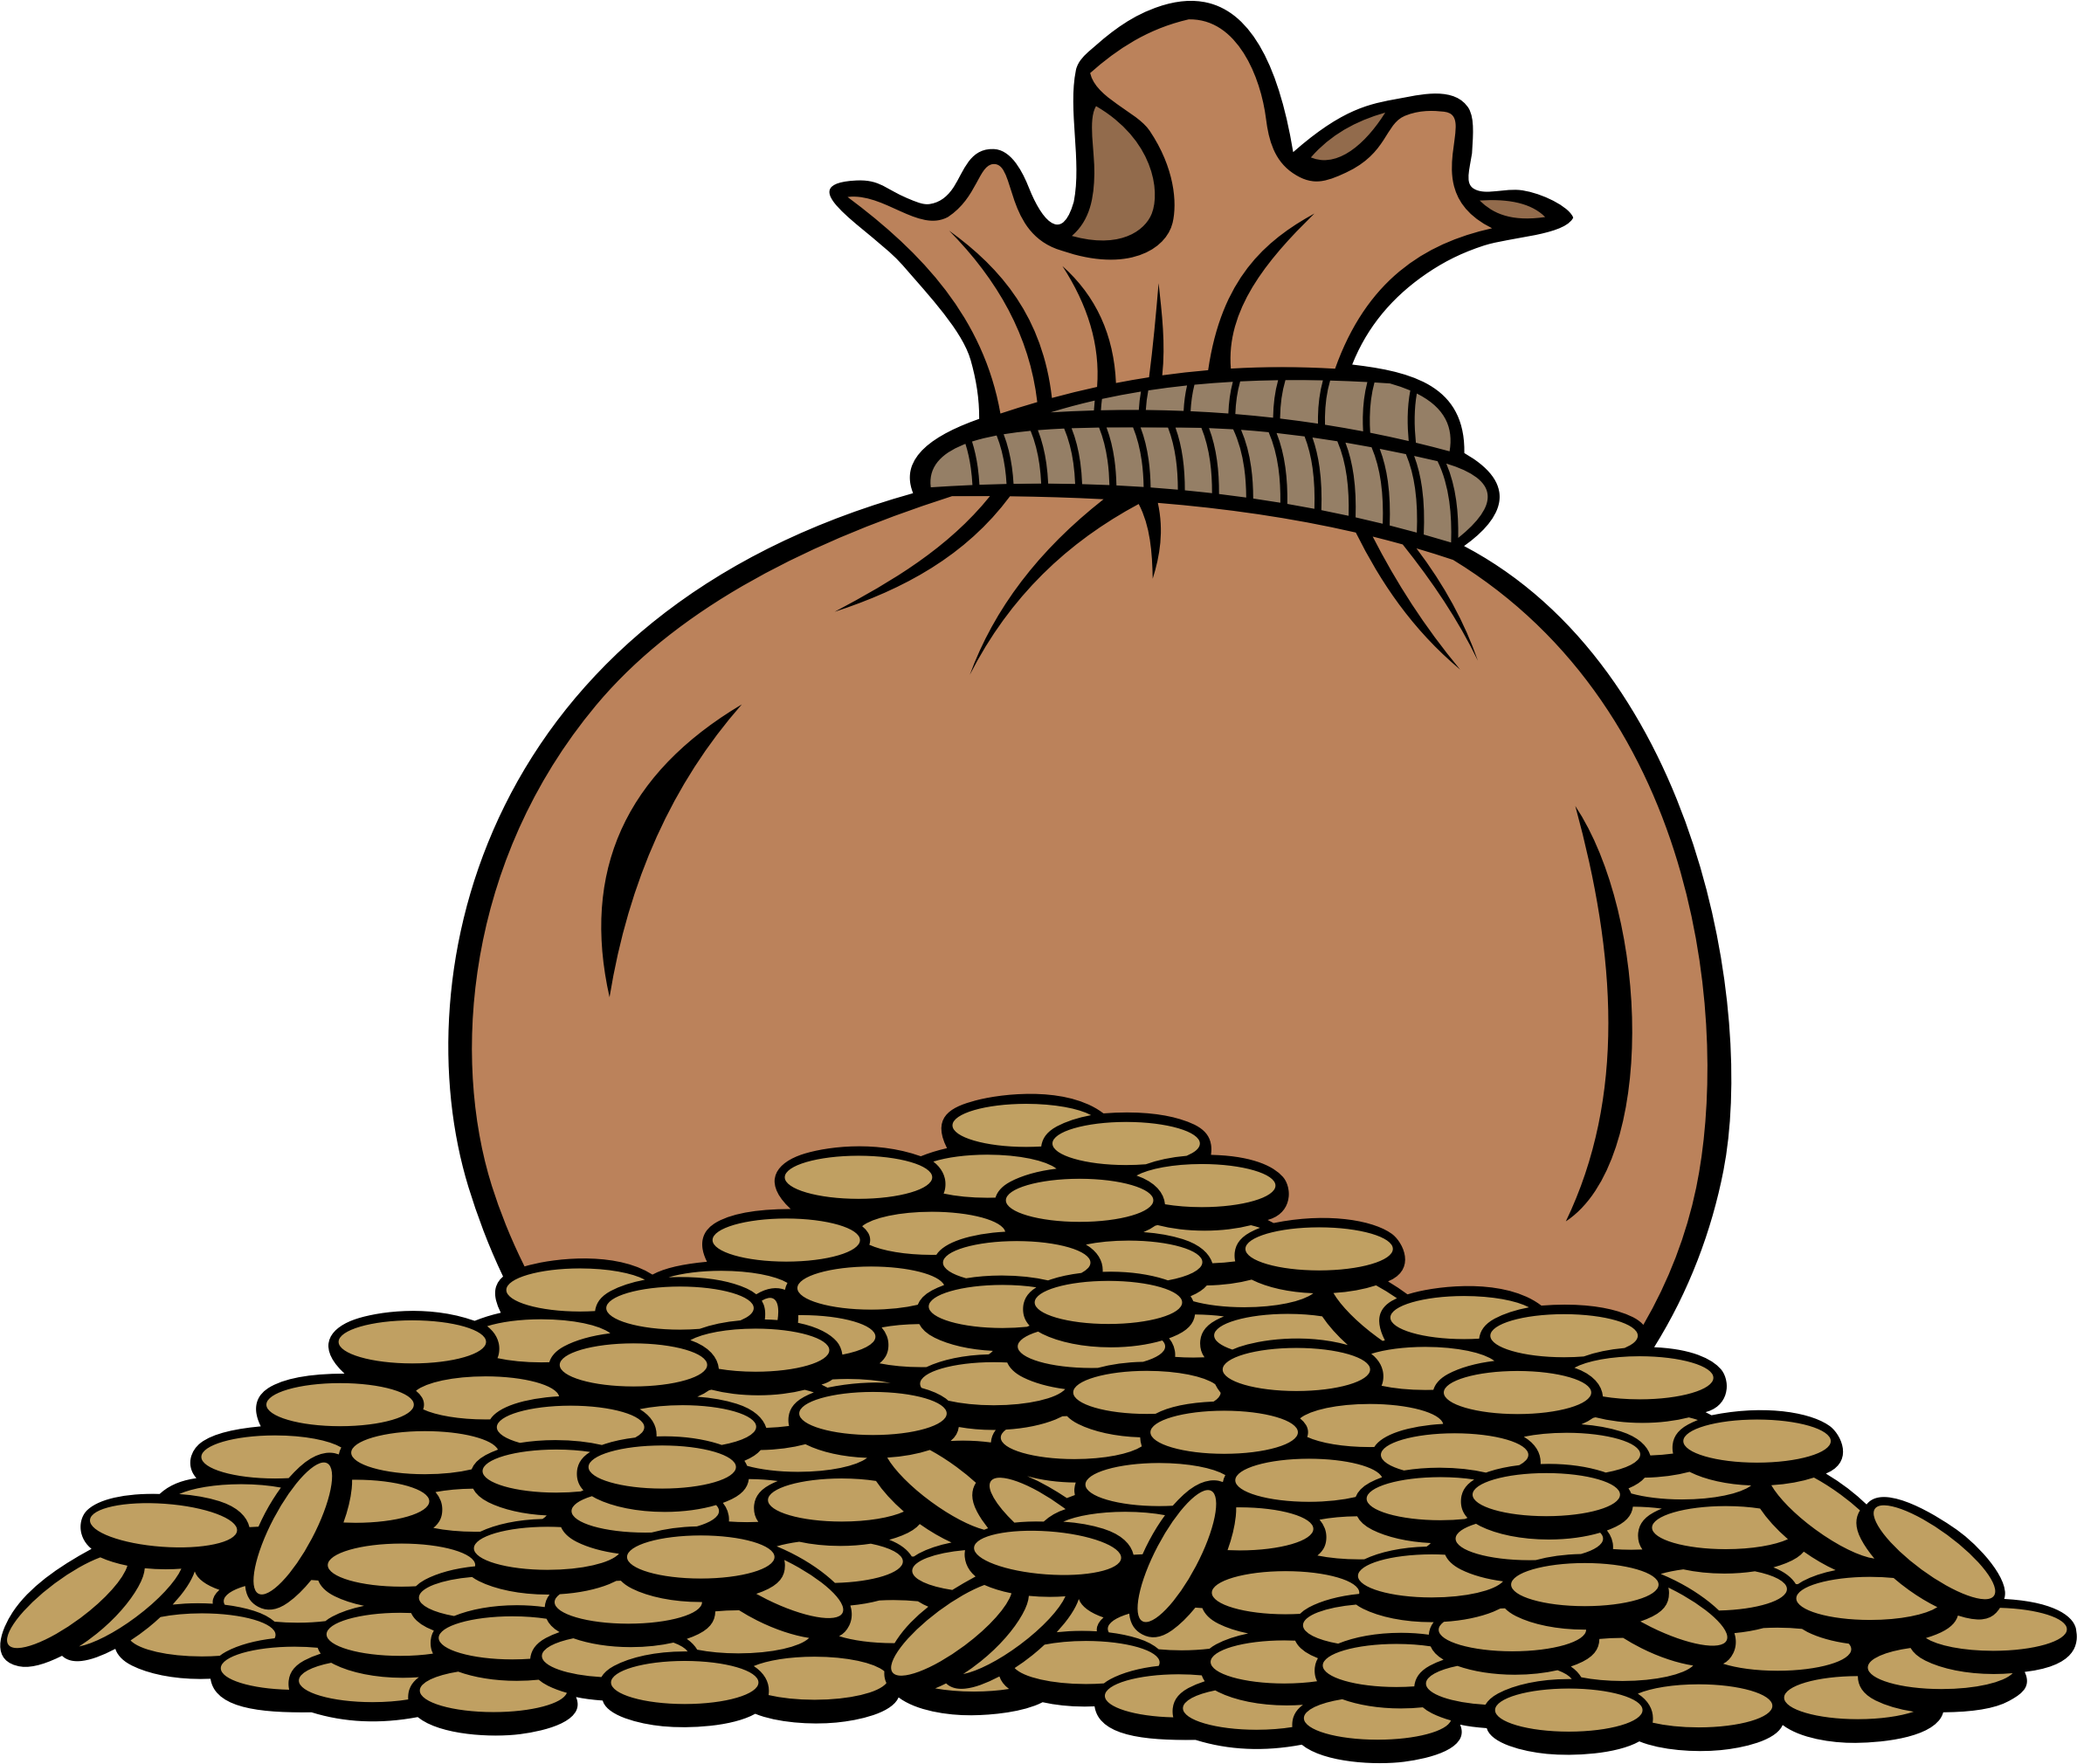 Money bag and coins clipart image black and white Clipart - Bag of gold coins image black and white